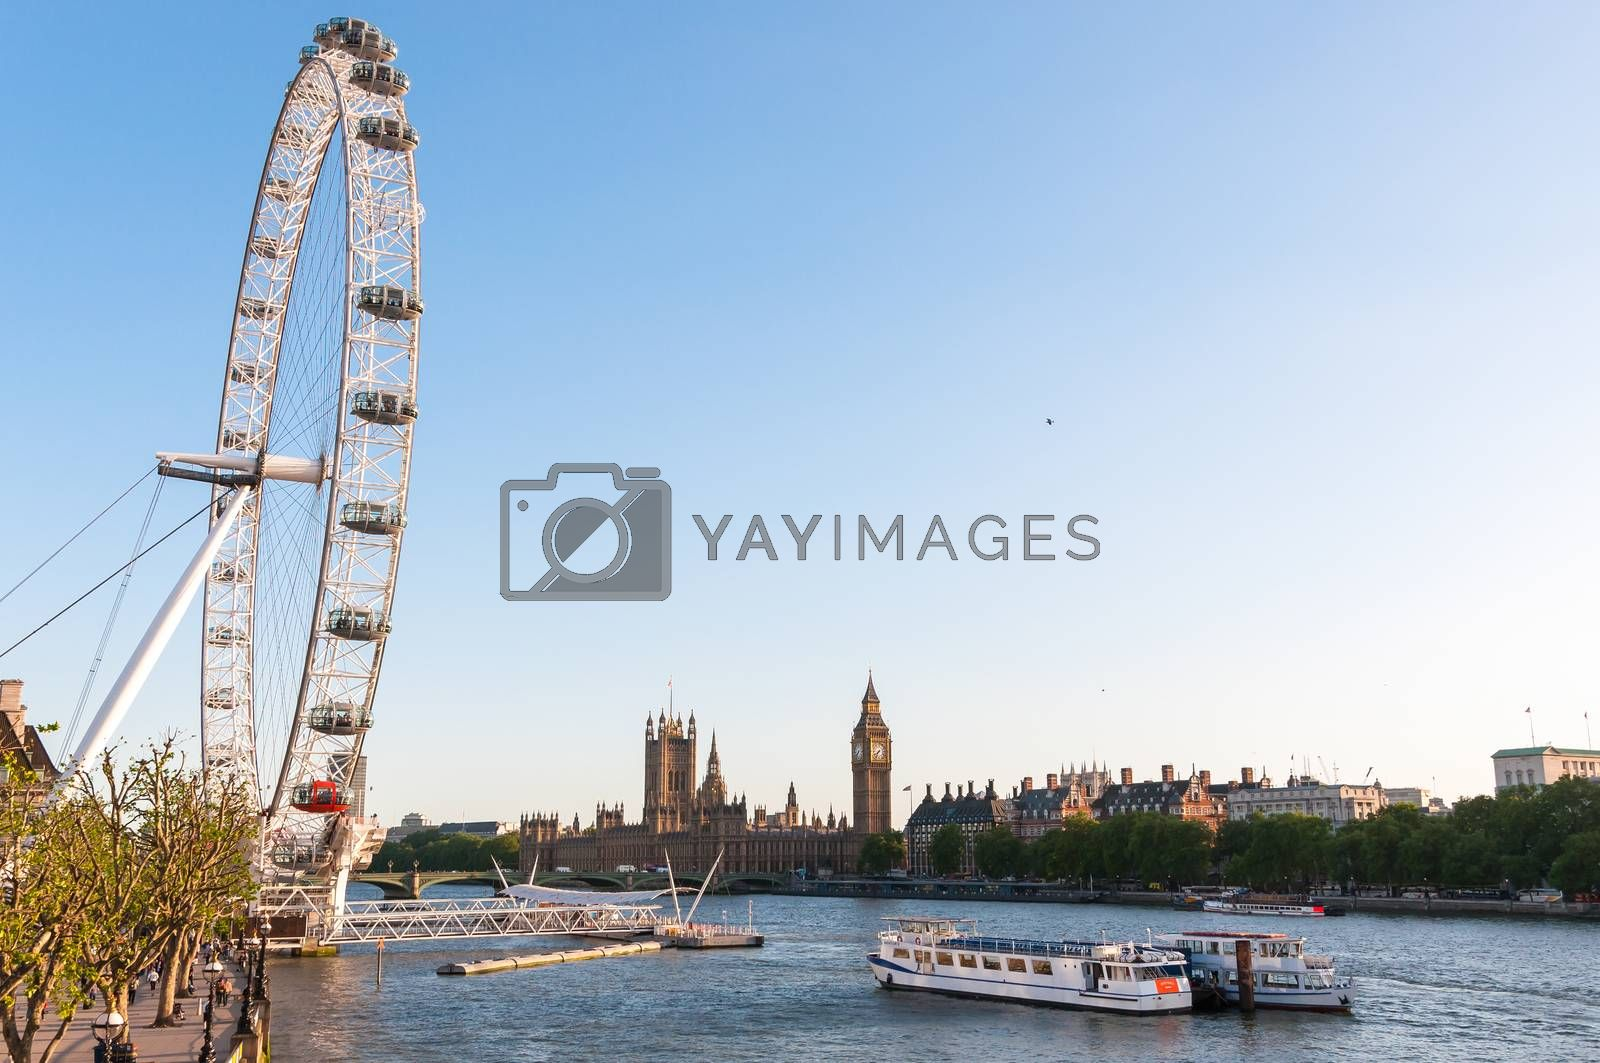 London Eye and Houses of Parliament by mkos83